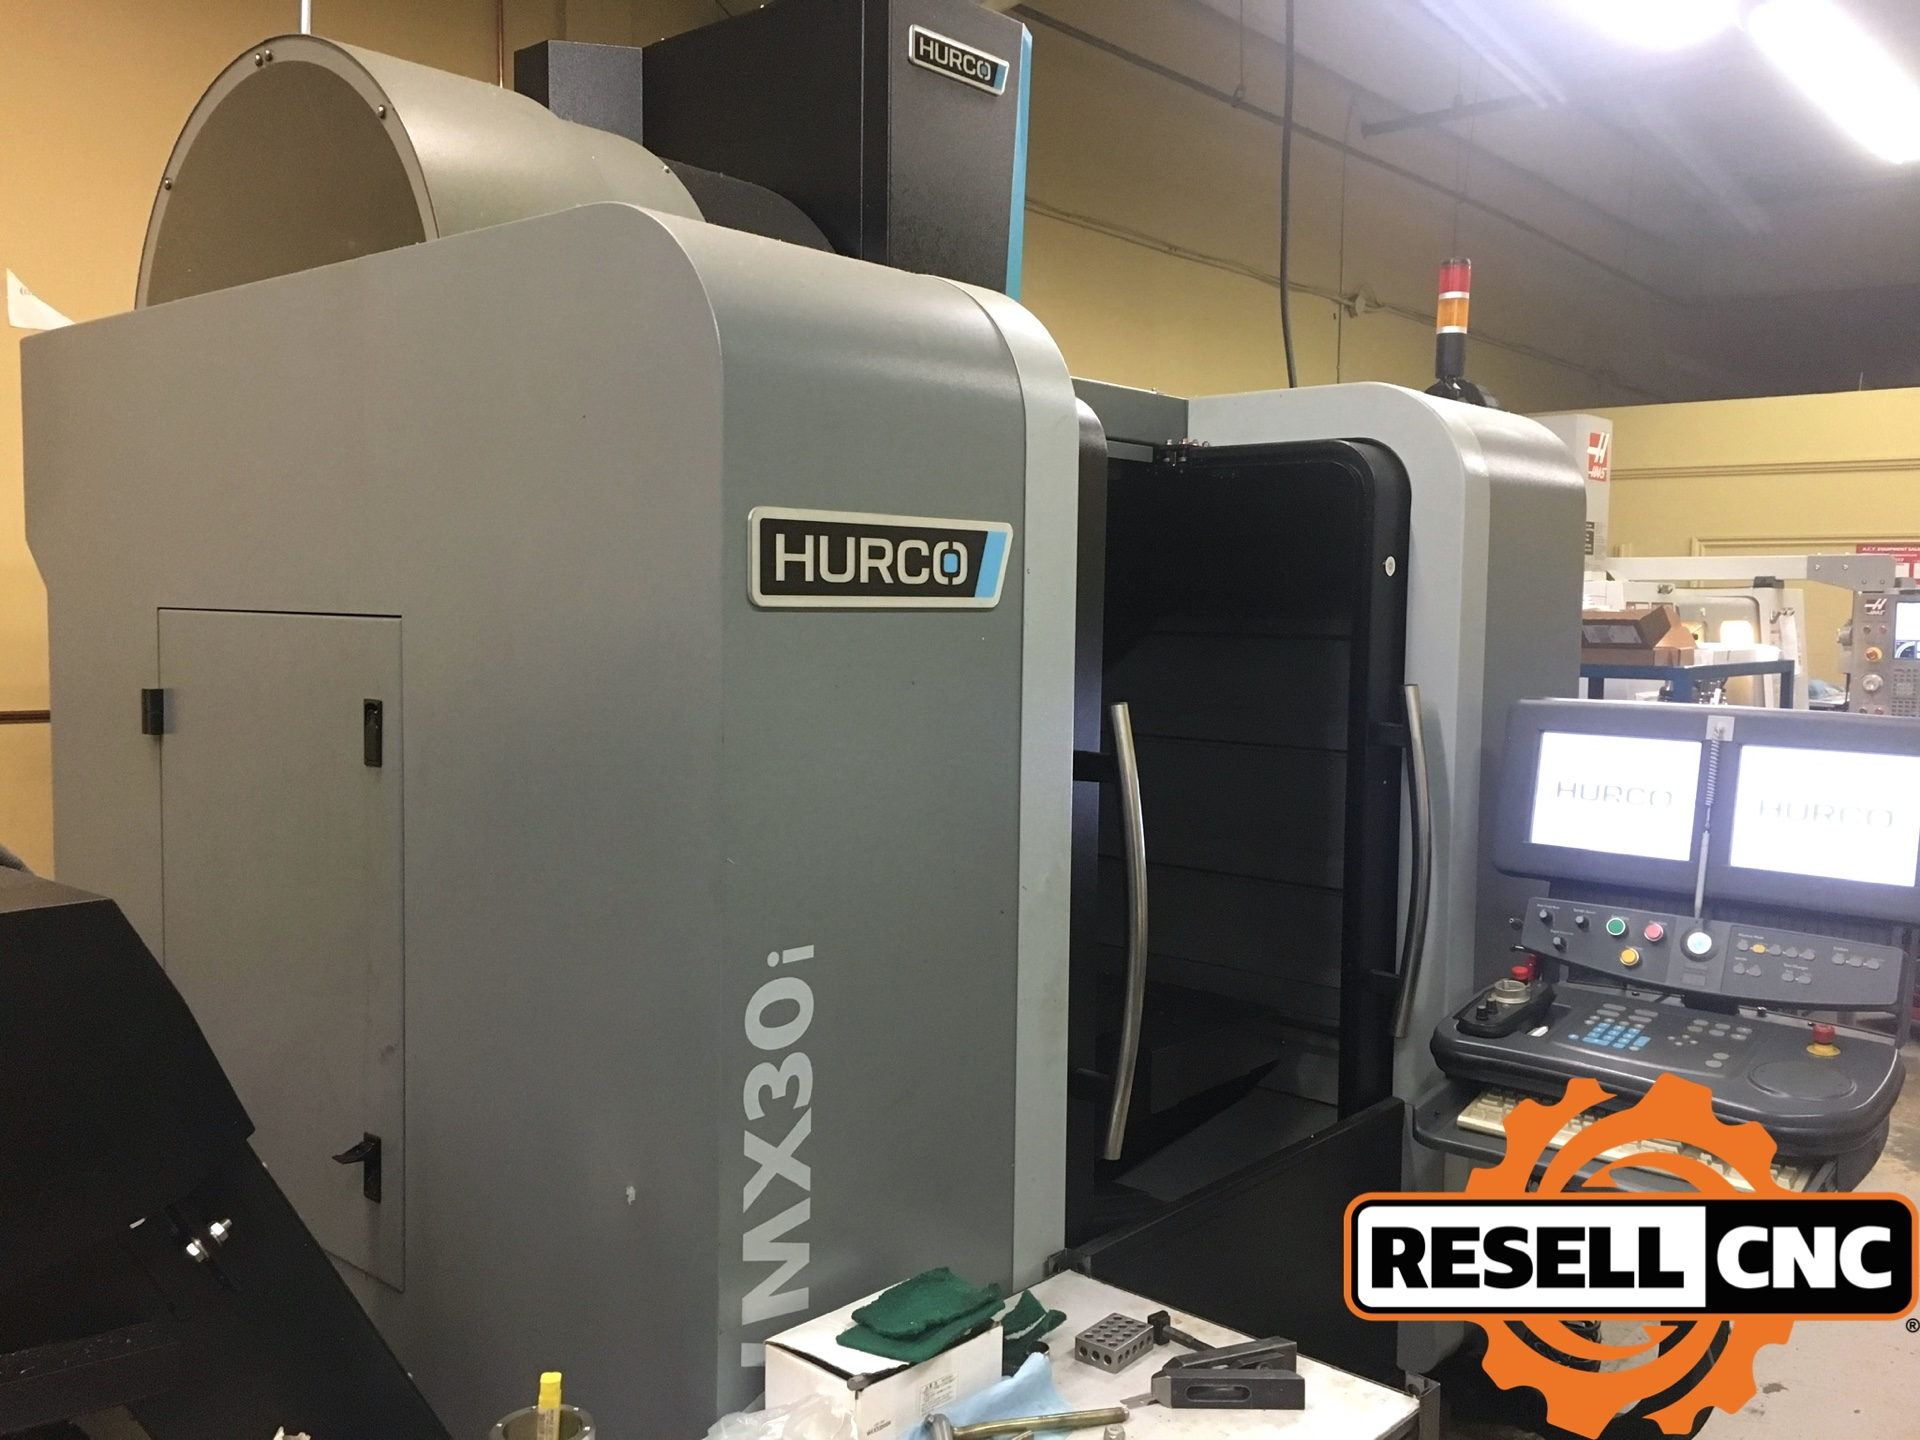 Used CNC Verticals - Used CNC Vertical Machines | Resell CNC